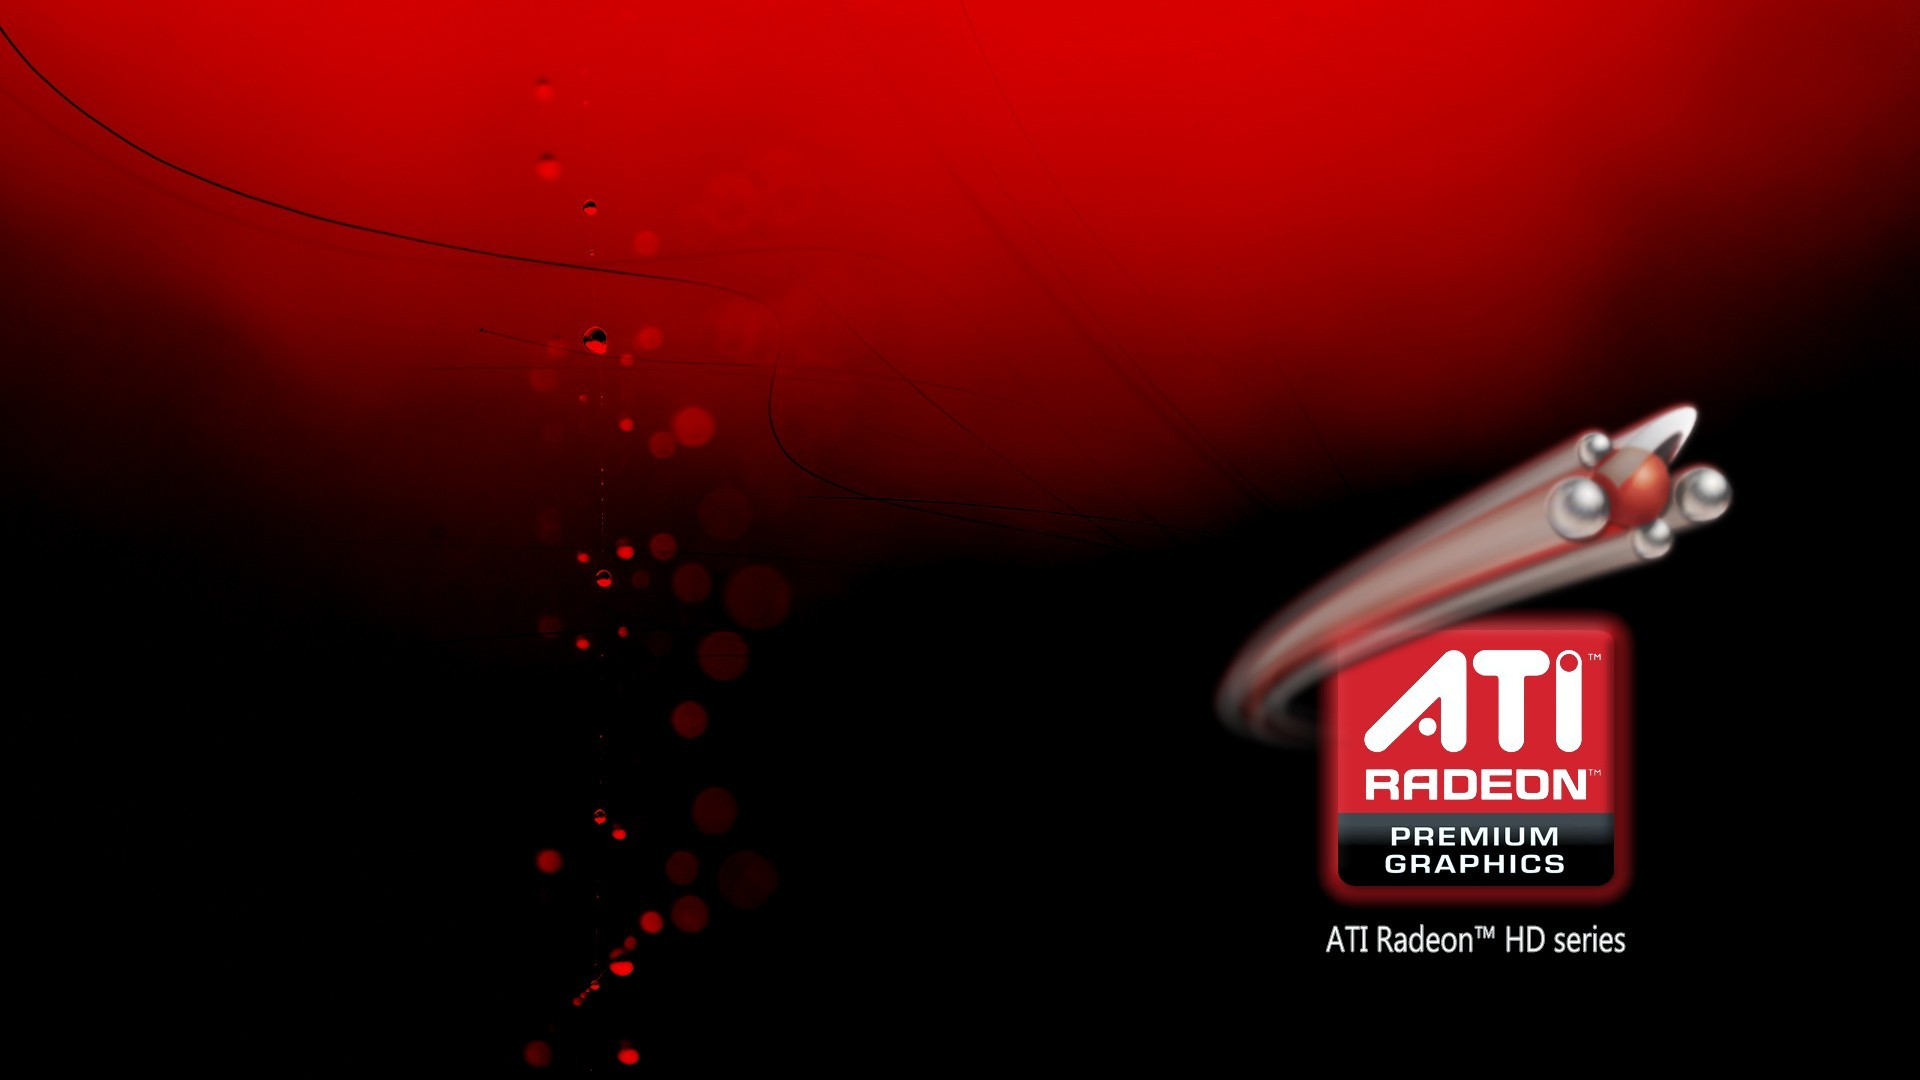 Wallpapers Ati Amd Pictures Wallpaperson Images Backgrounds Skin Red 1920x1080